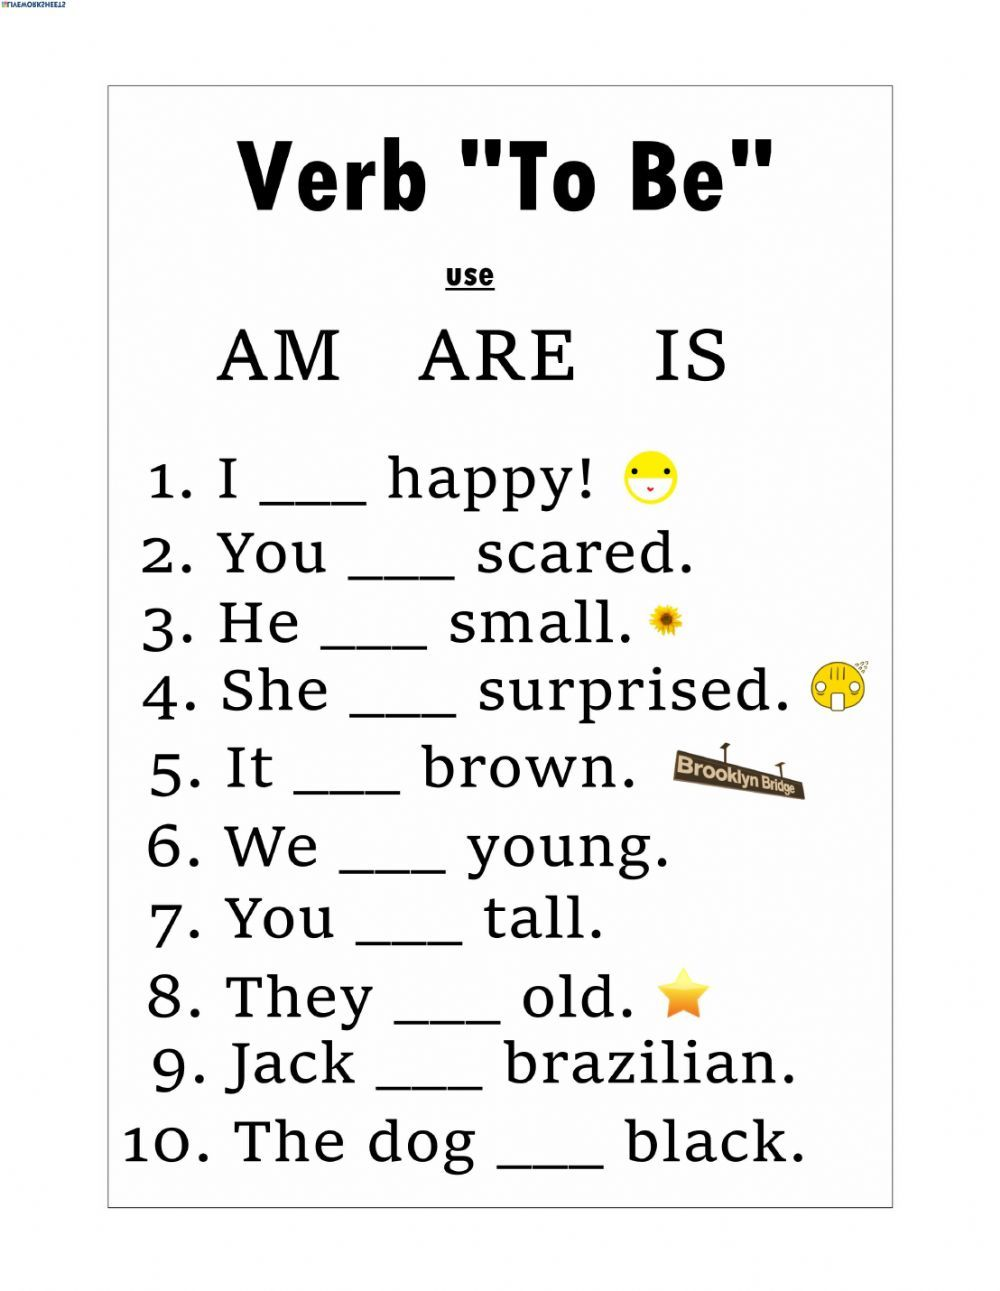 https://dubaikhalifas.com/helping-verb-worksheets-for-is-am-are-english-worksheets-for-kids-english-grammar/ [ 91 x 1291 Pixel ]